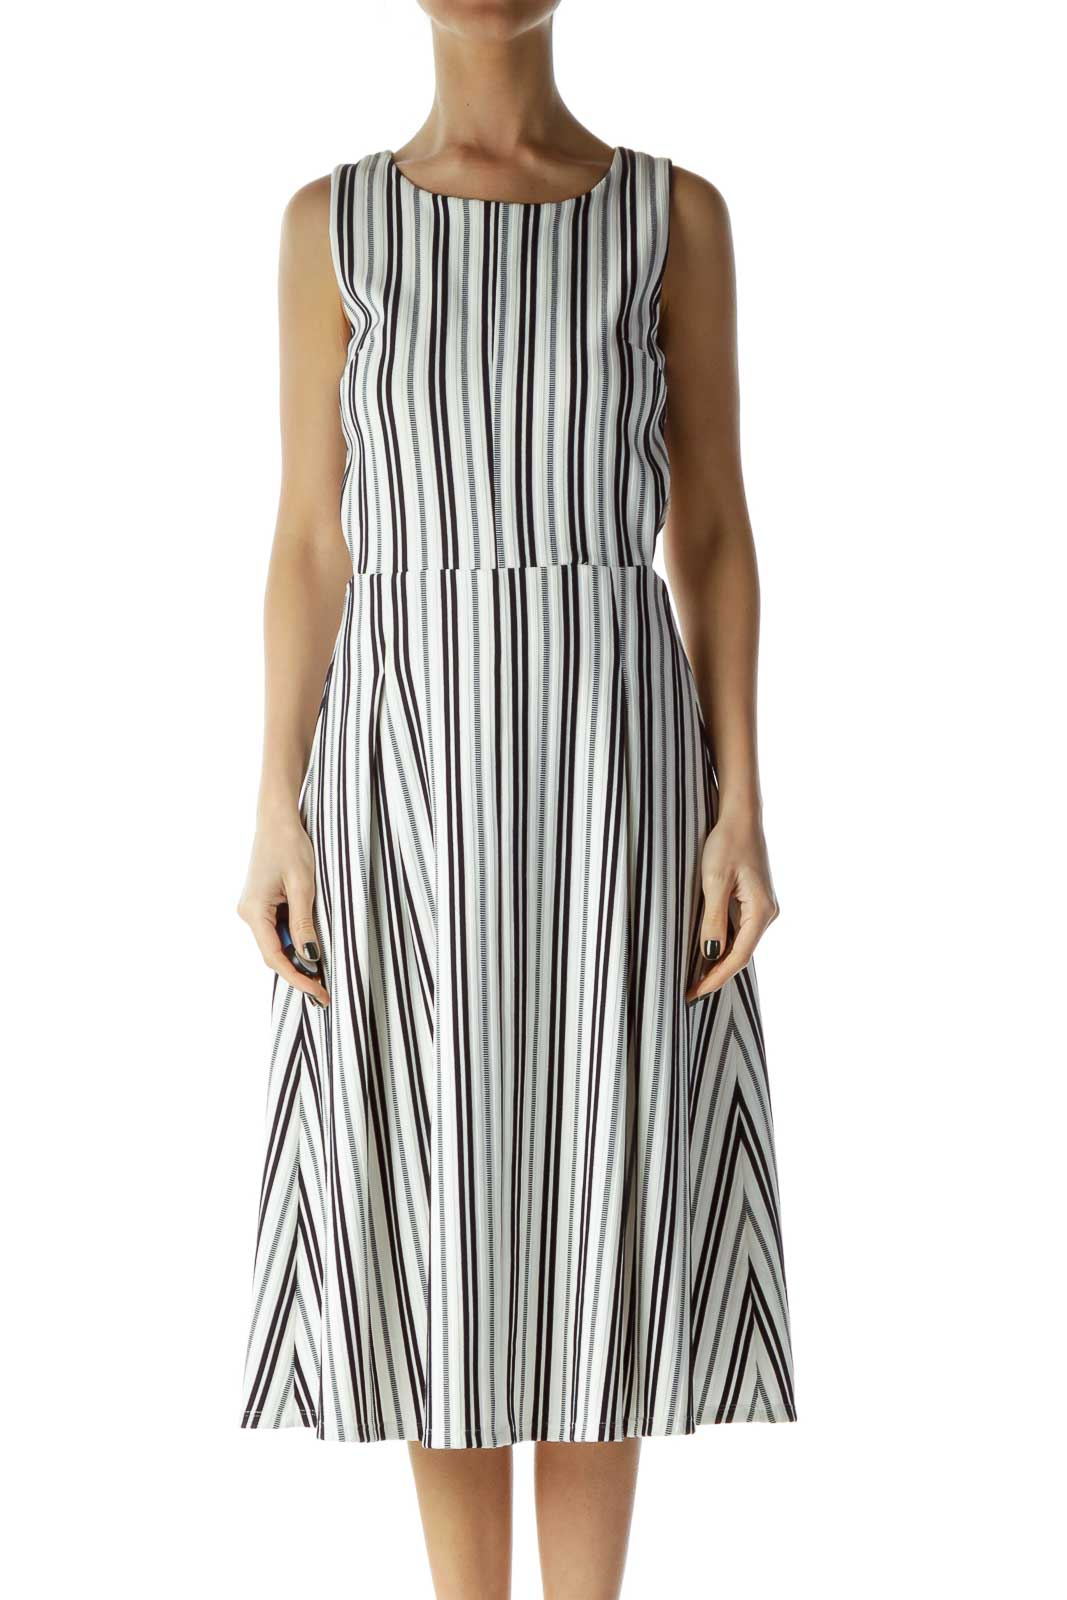 White and Black Striped Cut Out A-Line Dress Front